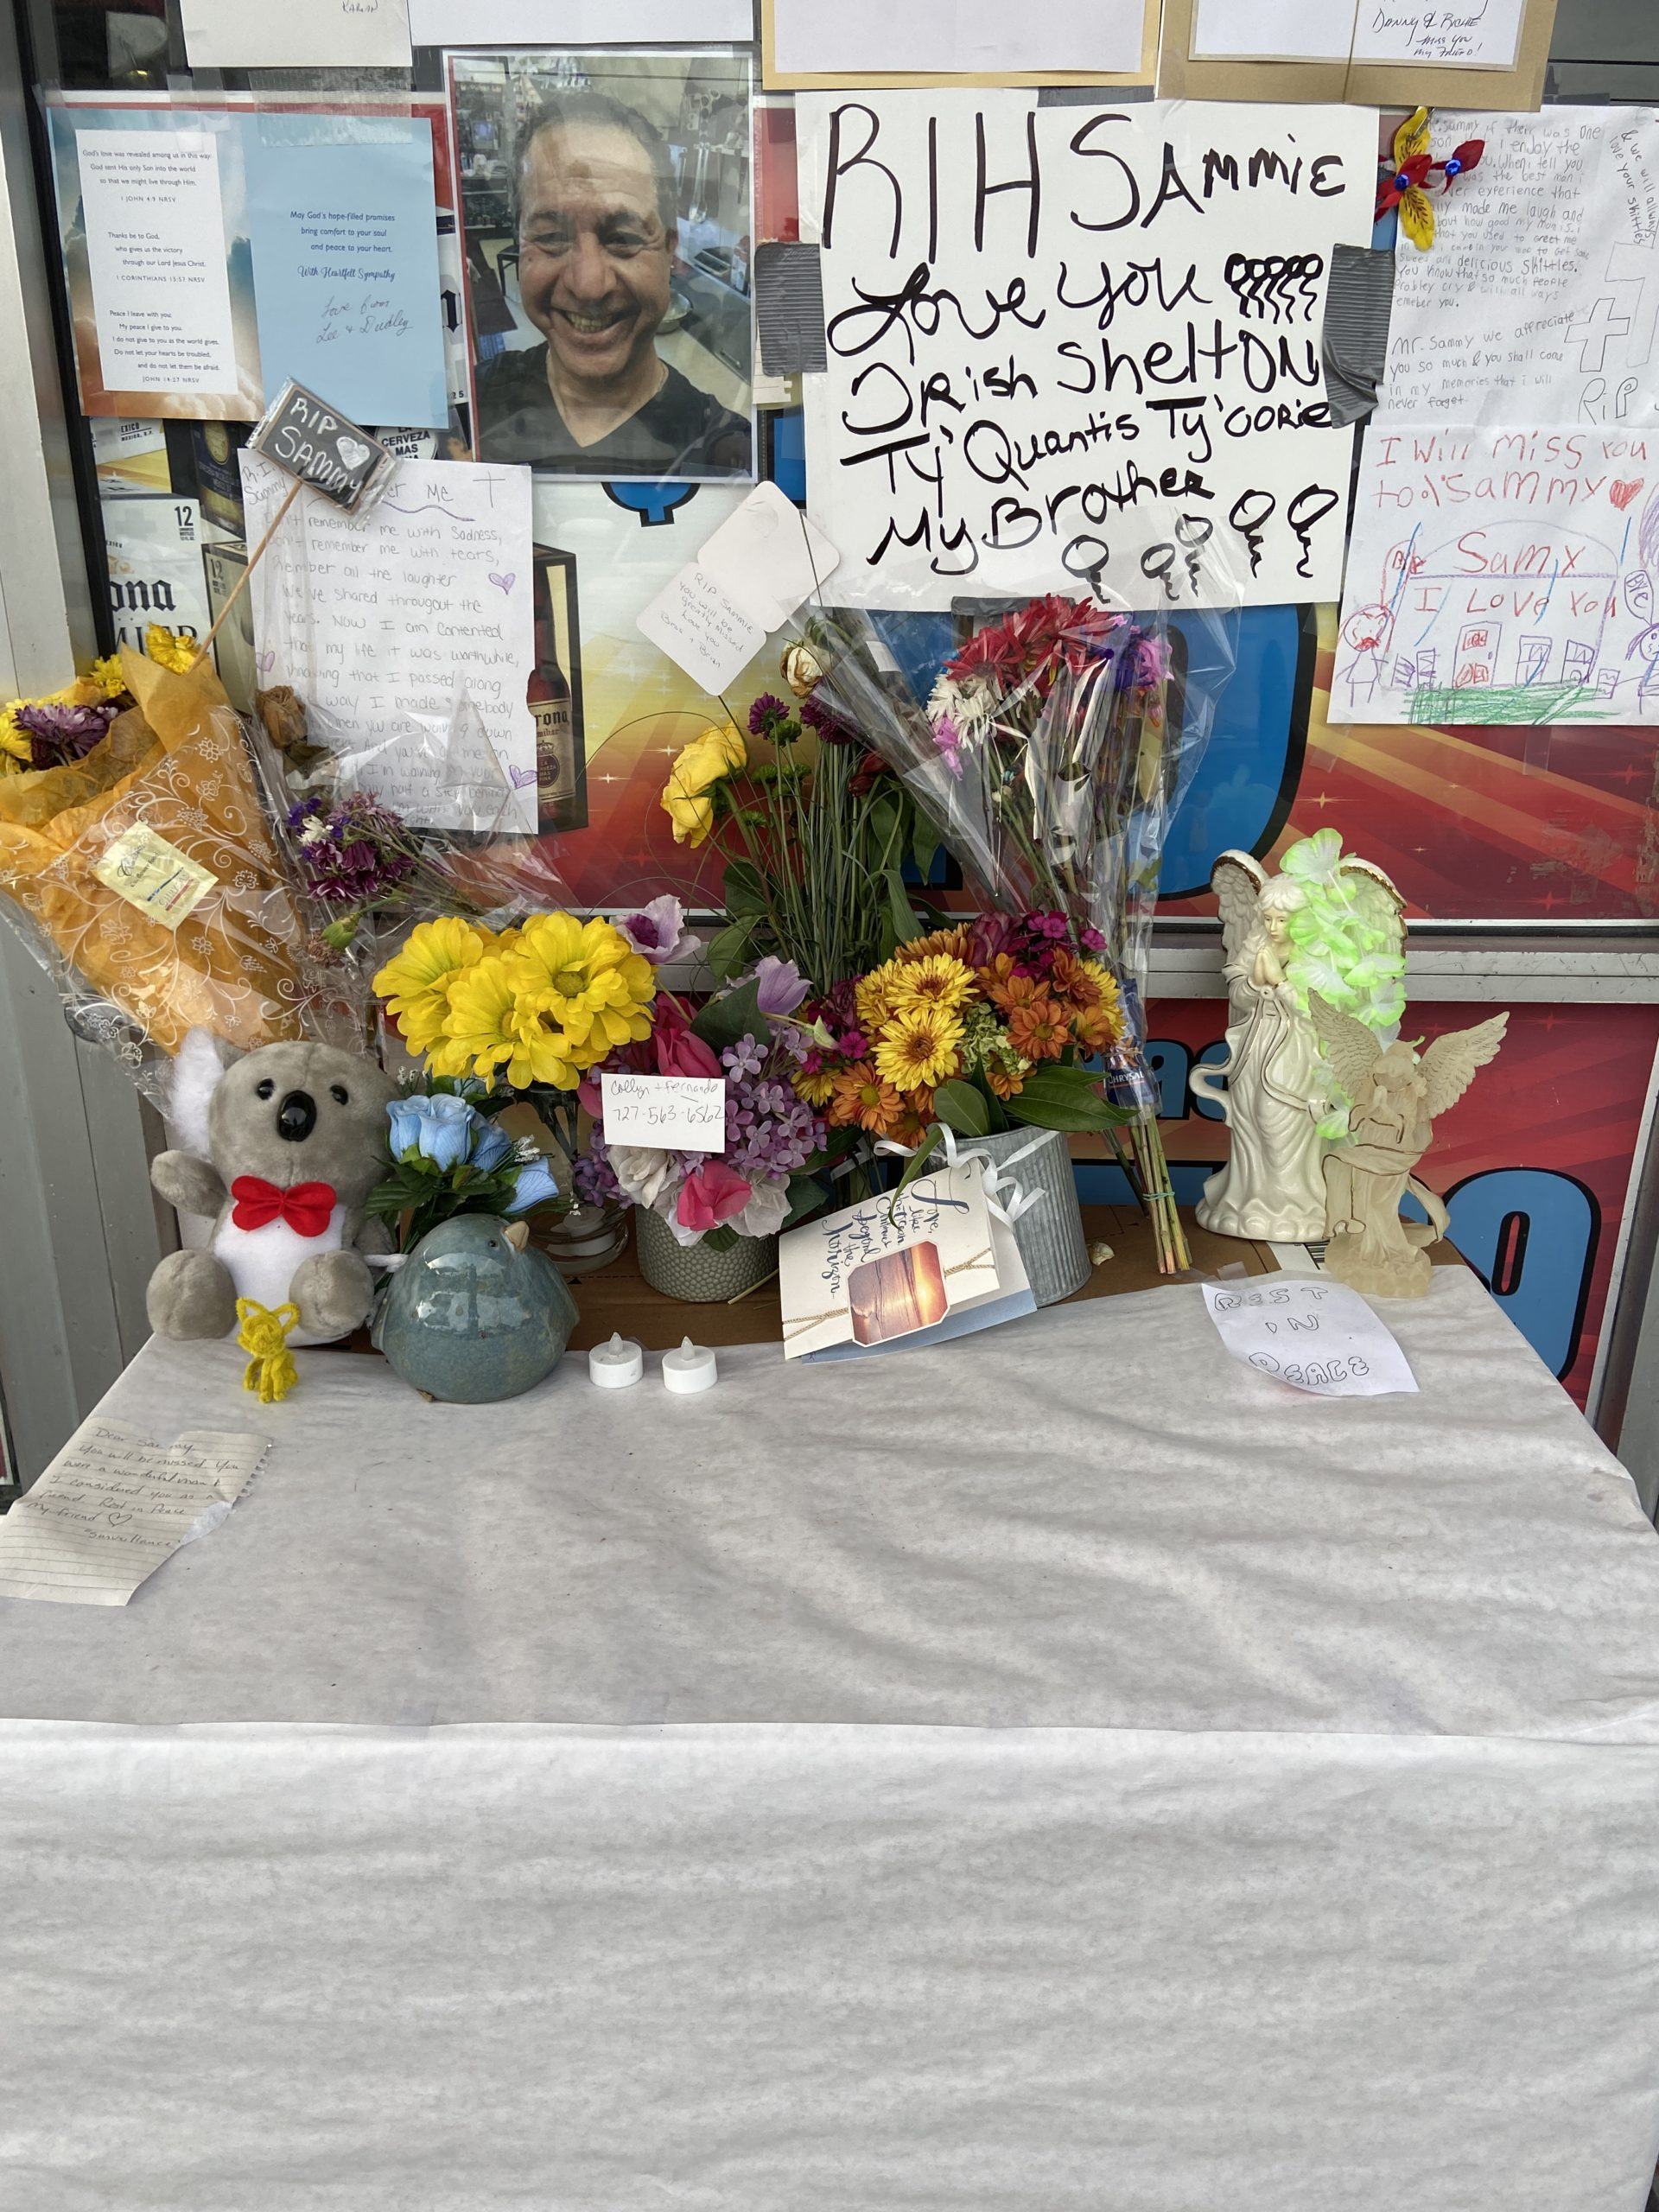 A memorial with cards, posters and photos.